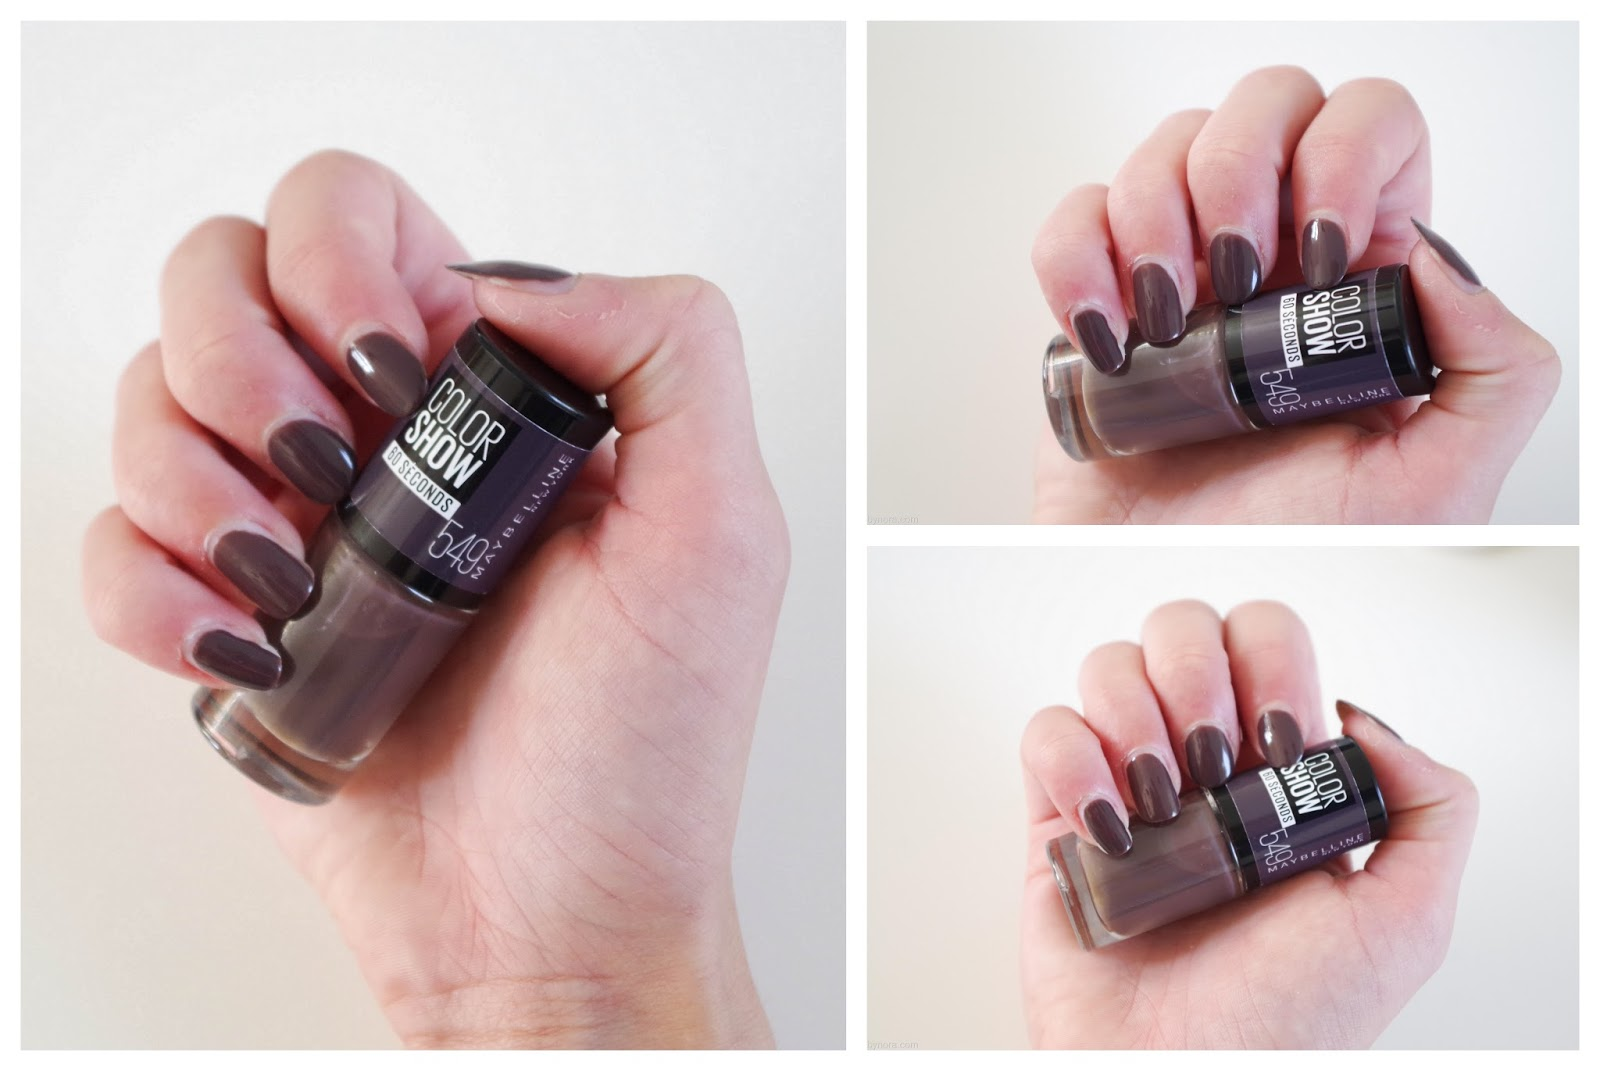 maybelline colorshow 60 seconds nailpolish nagellak 549 midnight taupe